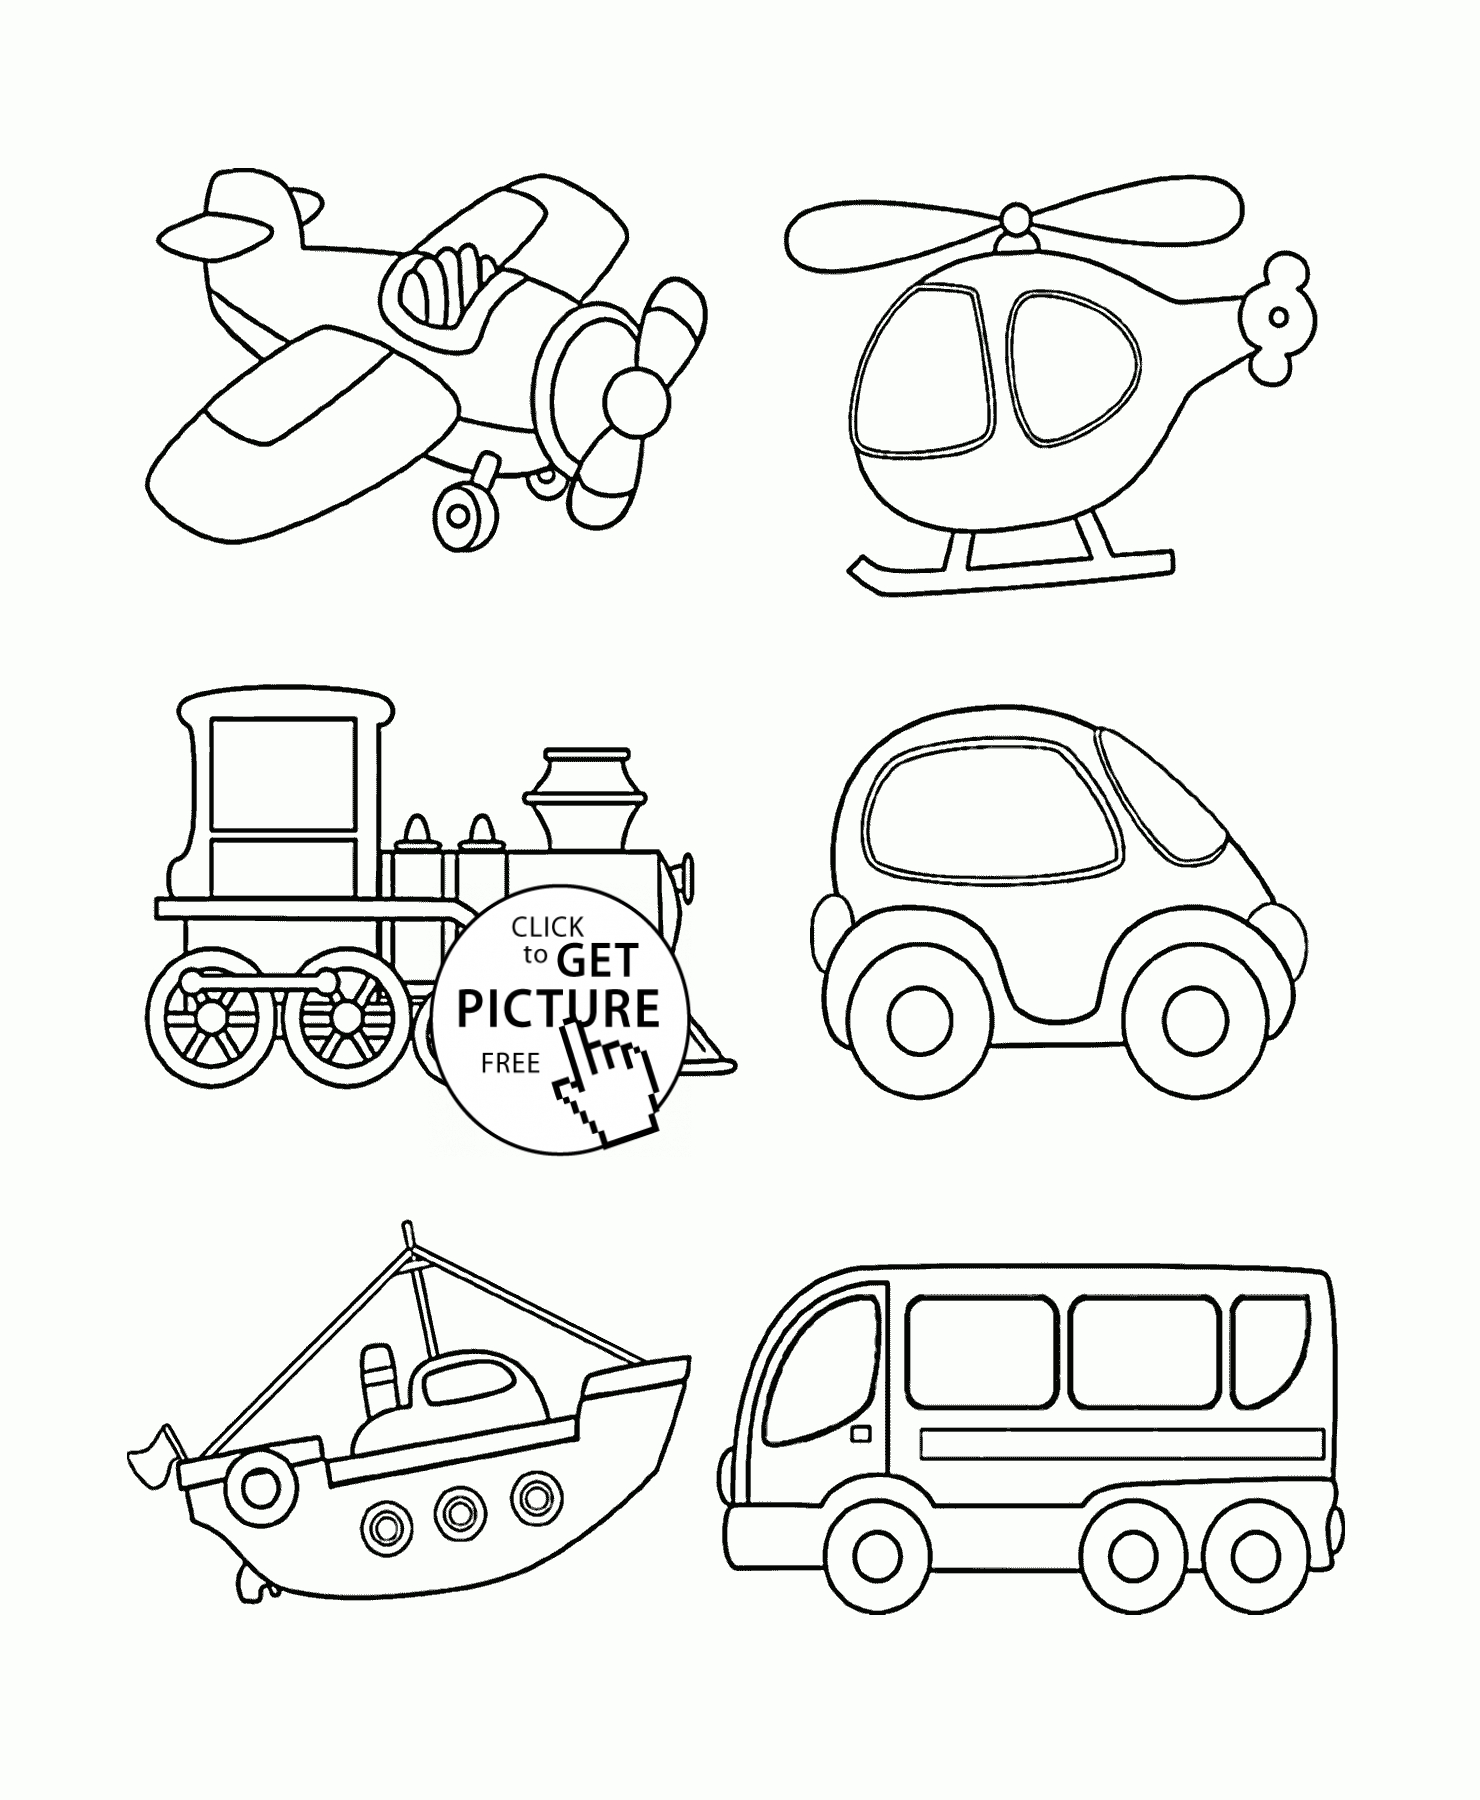 free printable coloring pages for toddlers - transportation coloring page for toddlers coloring pages printables free